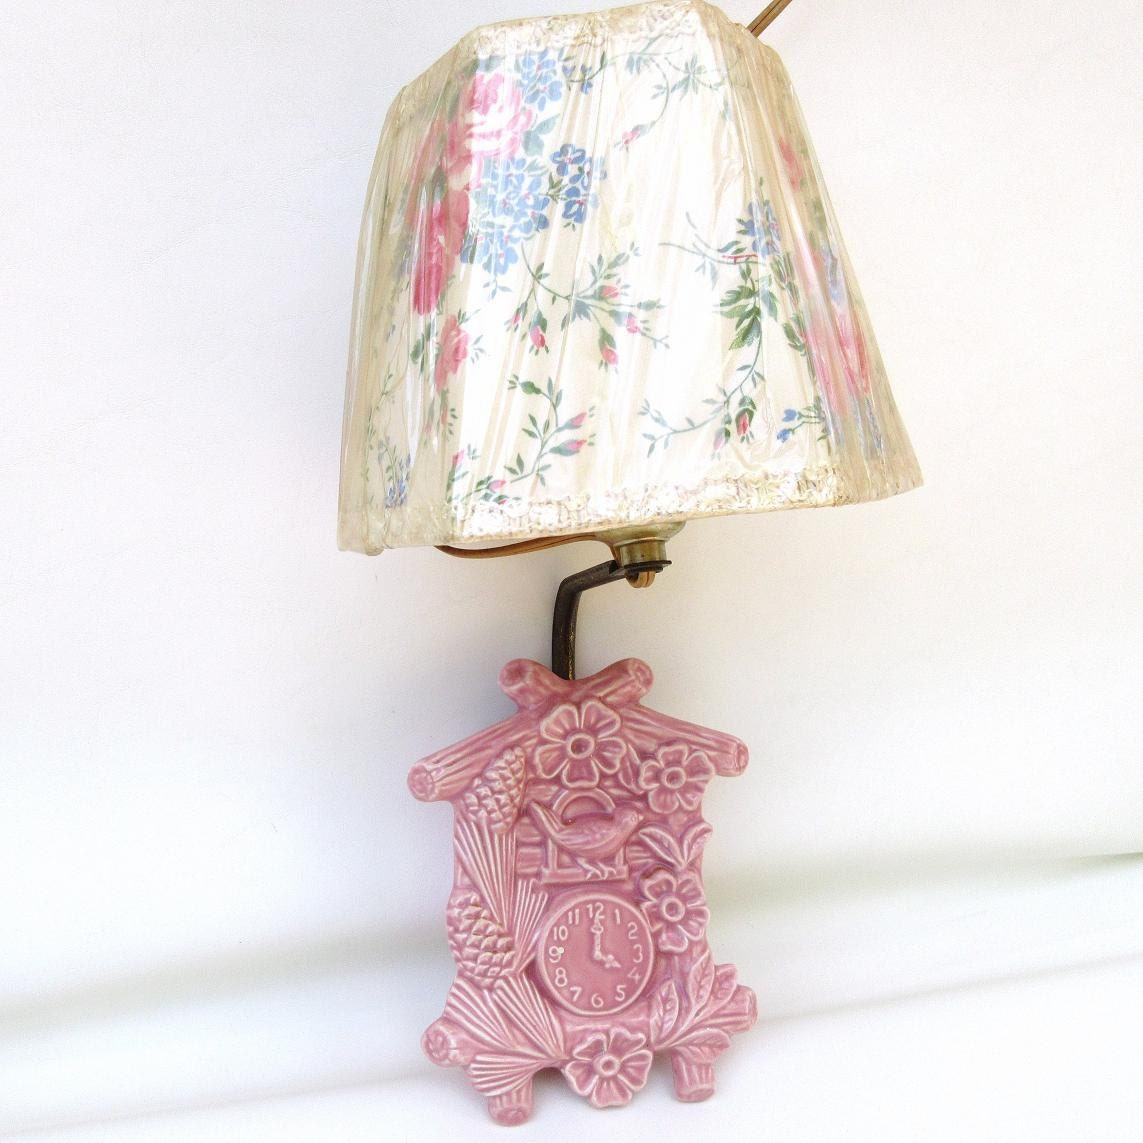 Vintage Sconce Lamp Wall Light Fixture Wall Pocket Nursery